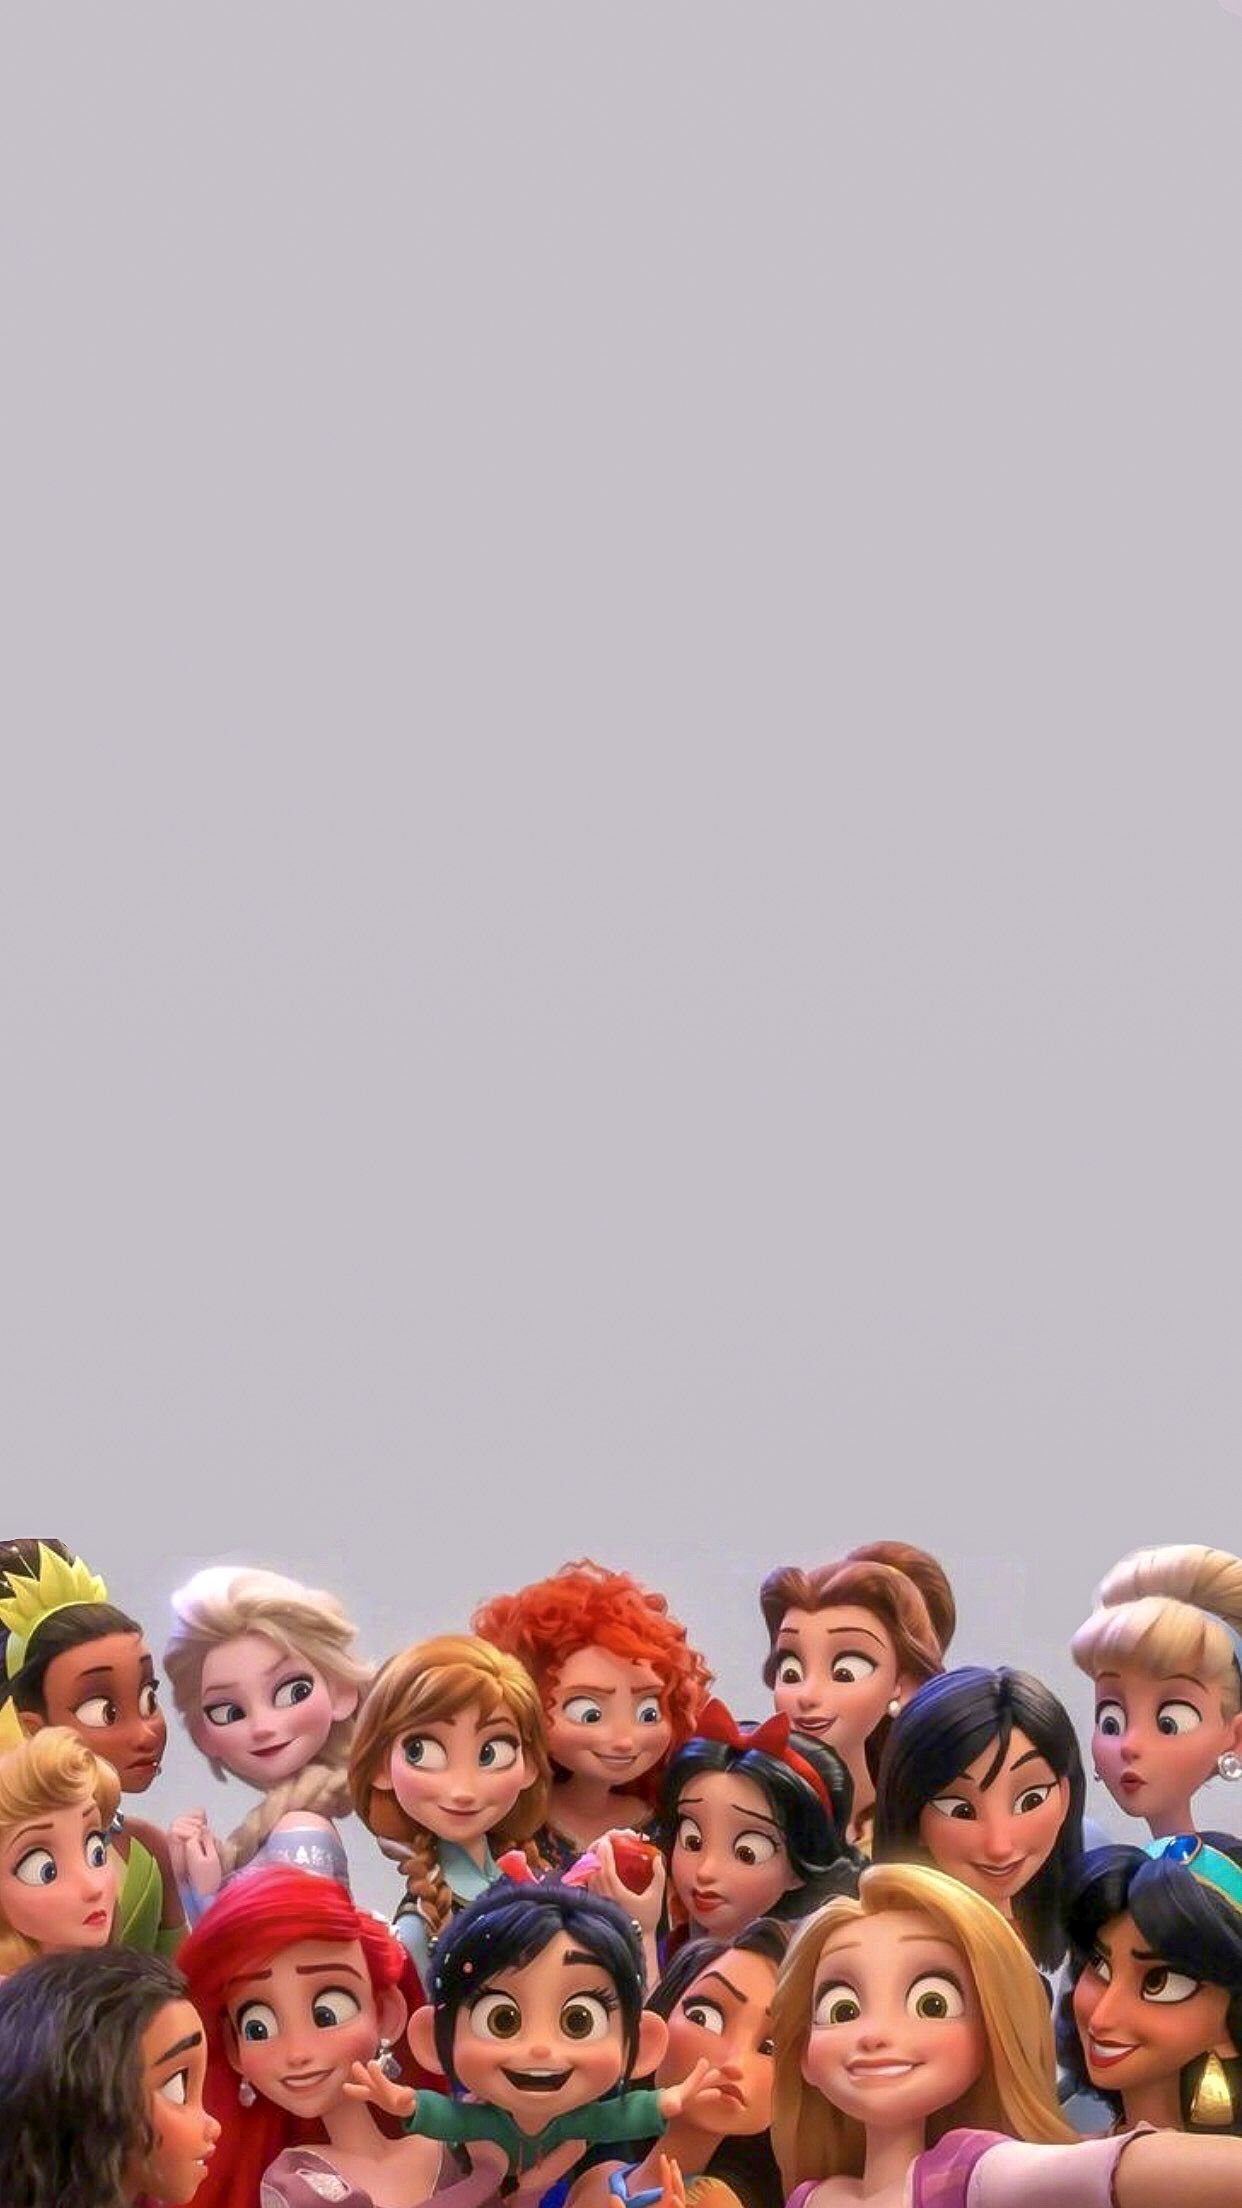 17 Disney Wallpapers To Personalize Your Cell In 2020 Wallpaper Iphone Disney Princess Disney Wallpaper Cute Disney Wallpaper